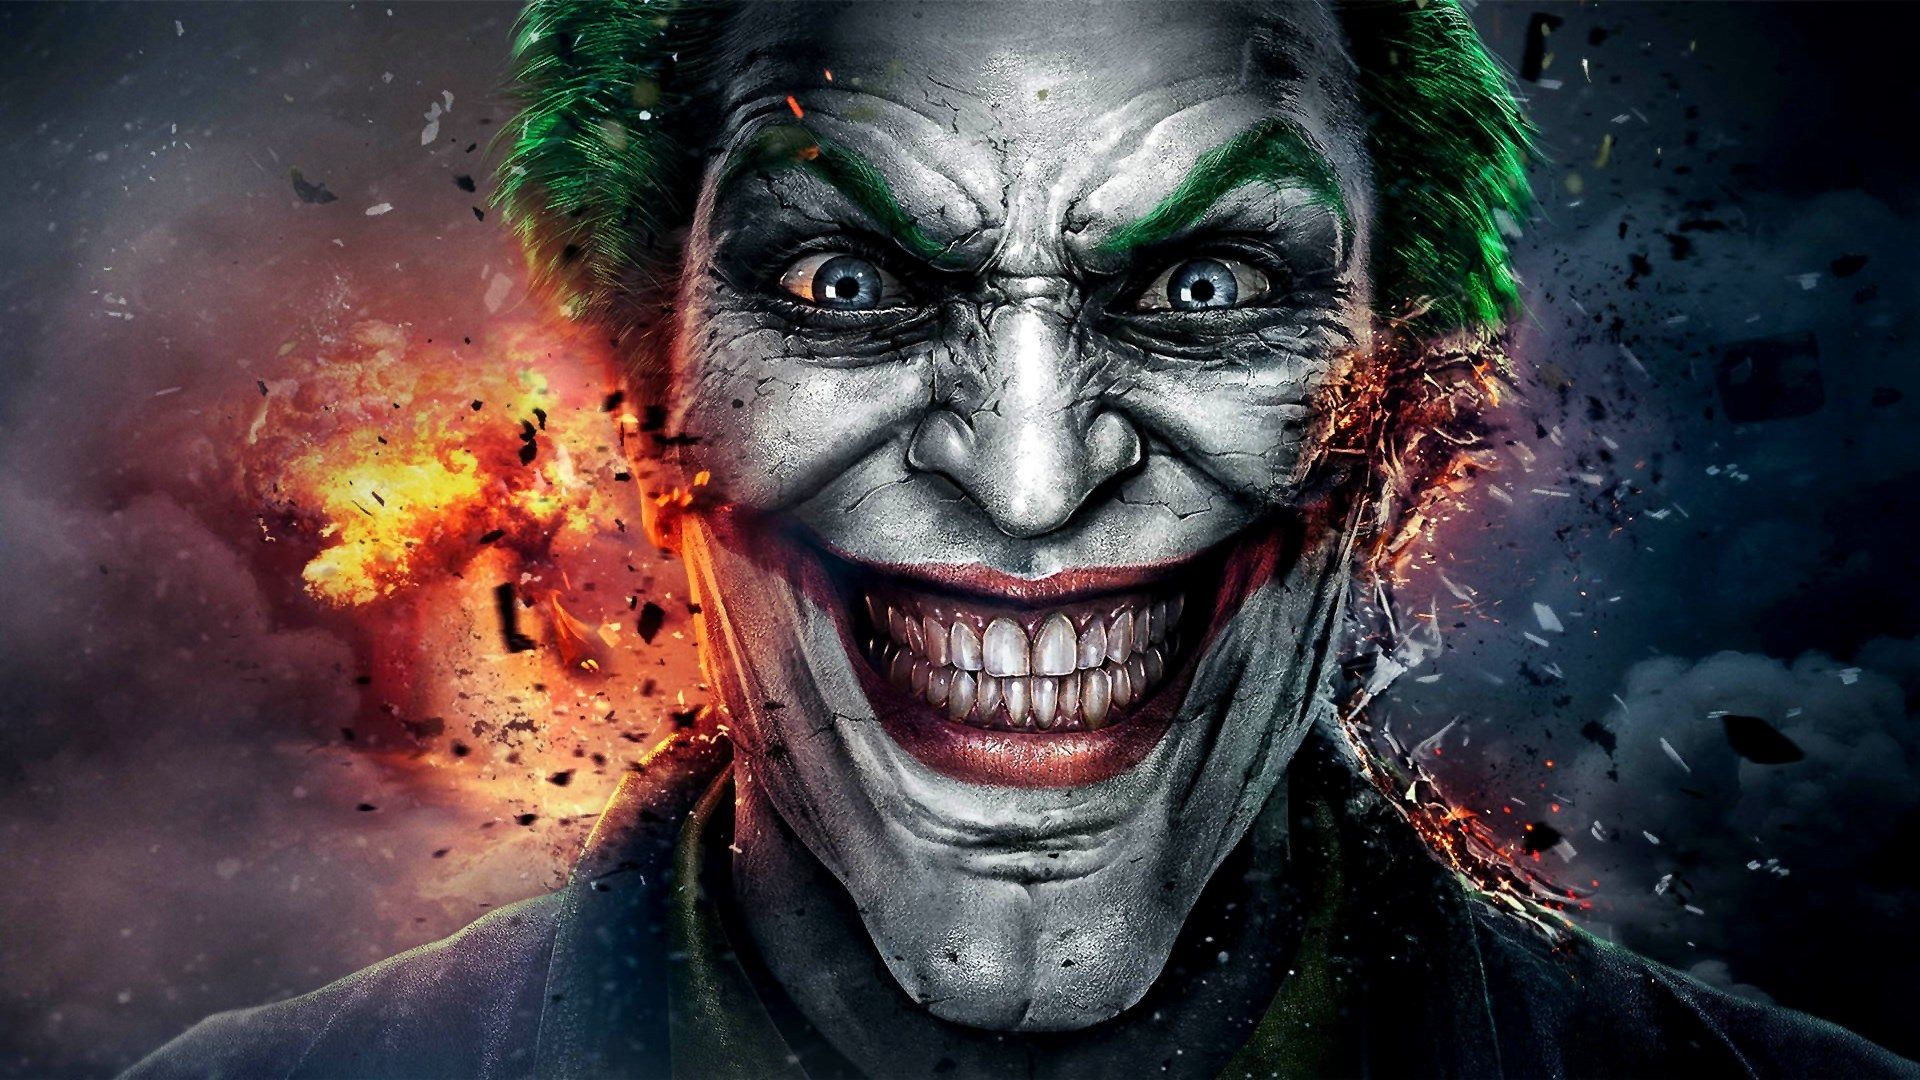 1920x1080 The Joker Wallpaper Hd Pc Download Hd In 2019